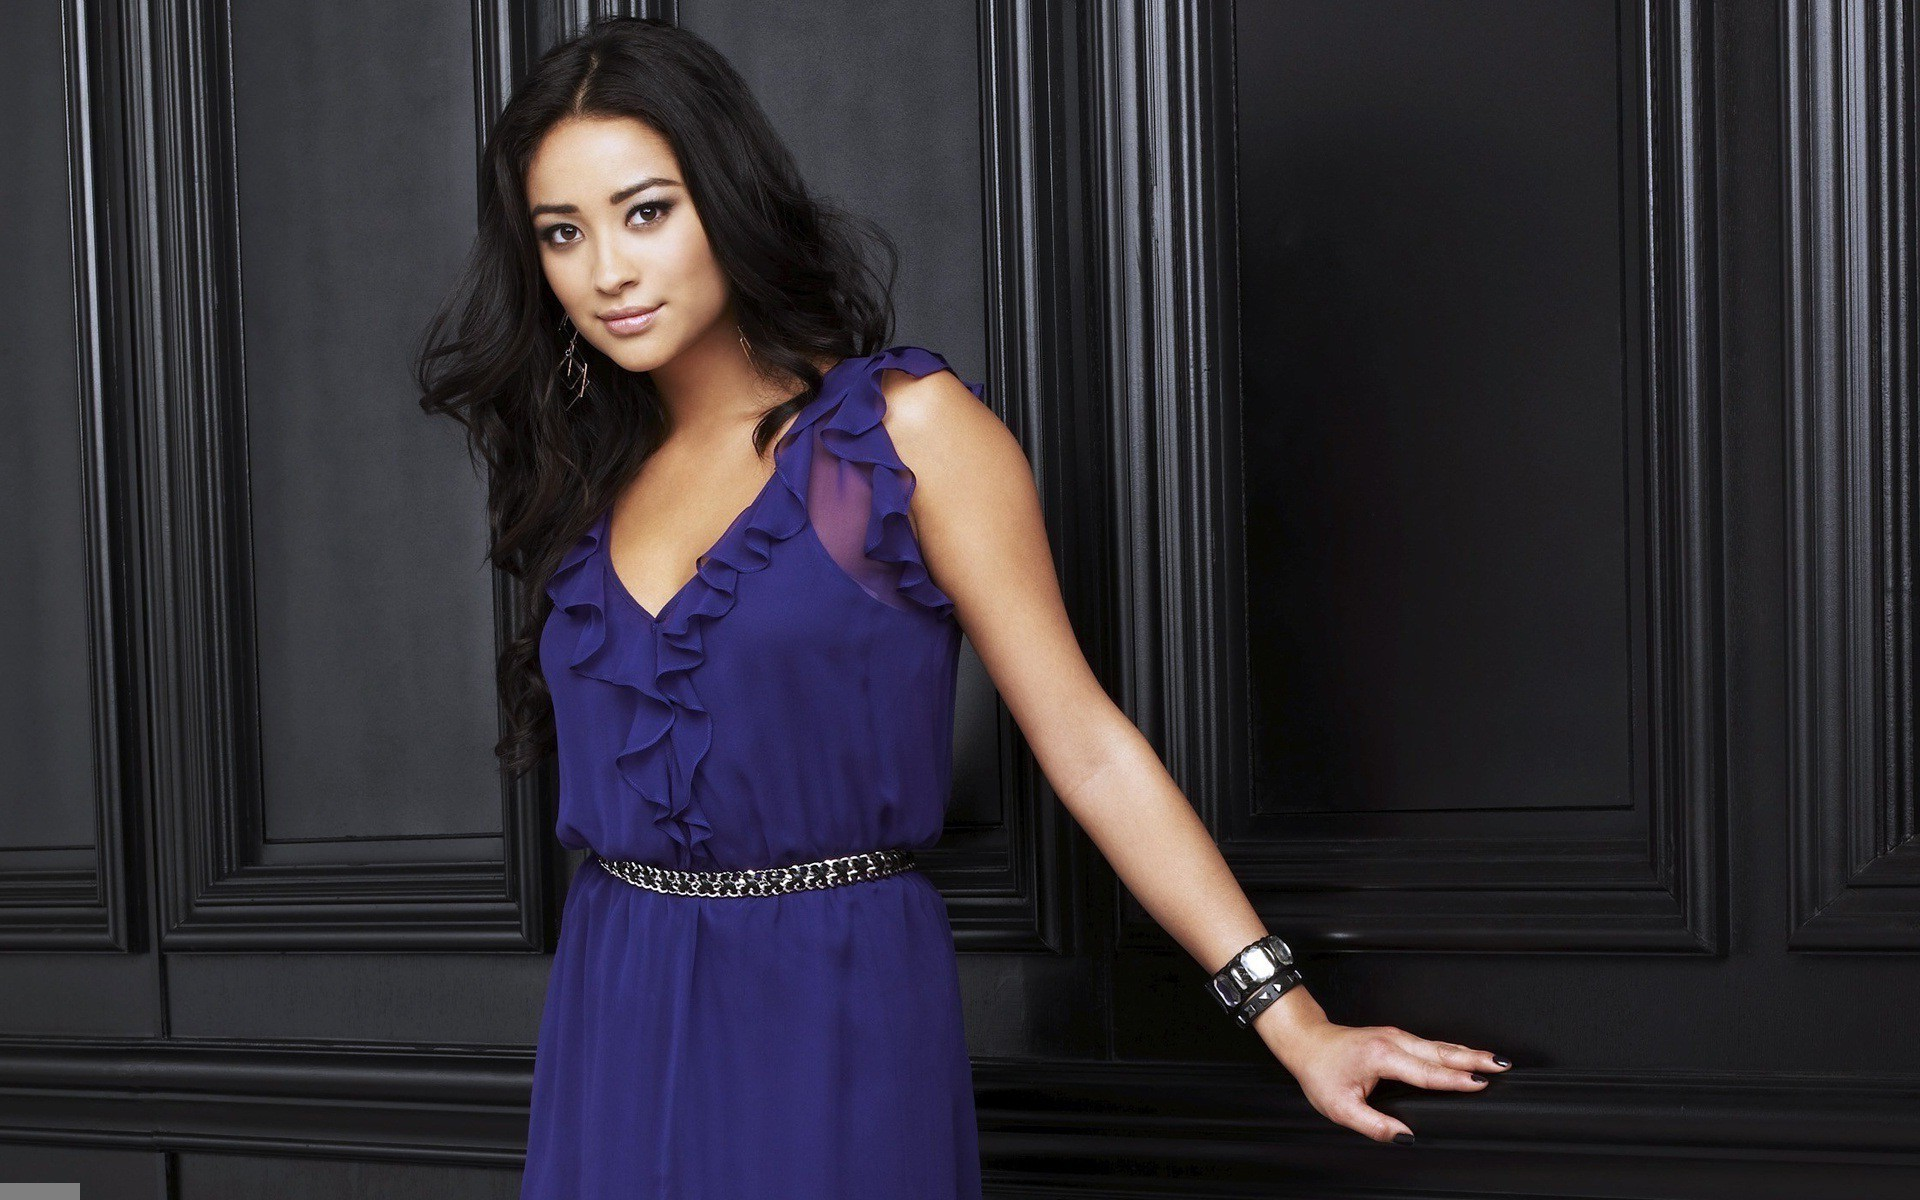 1920x1200 - Shay Mitchell Wallpapers 8